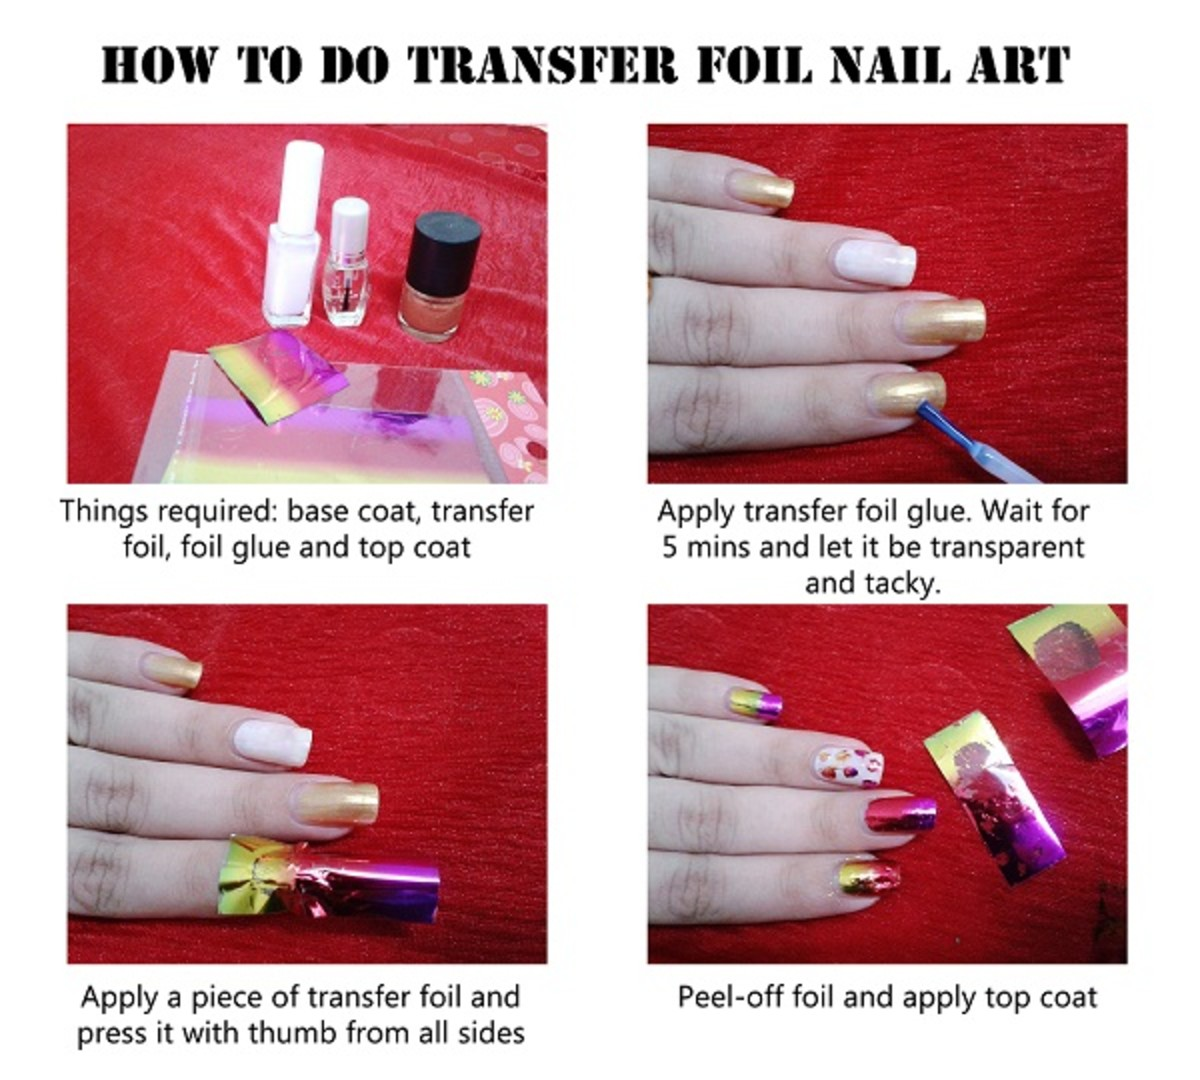 Have You Tried Transfer Foil Nail Art Before